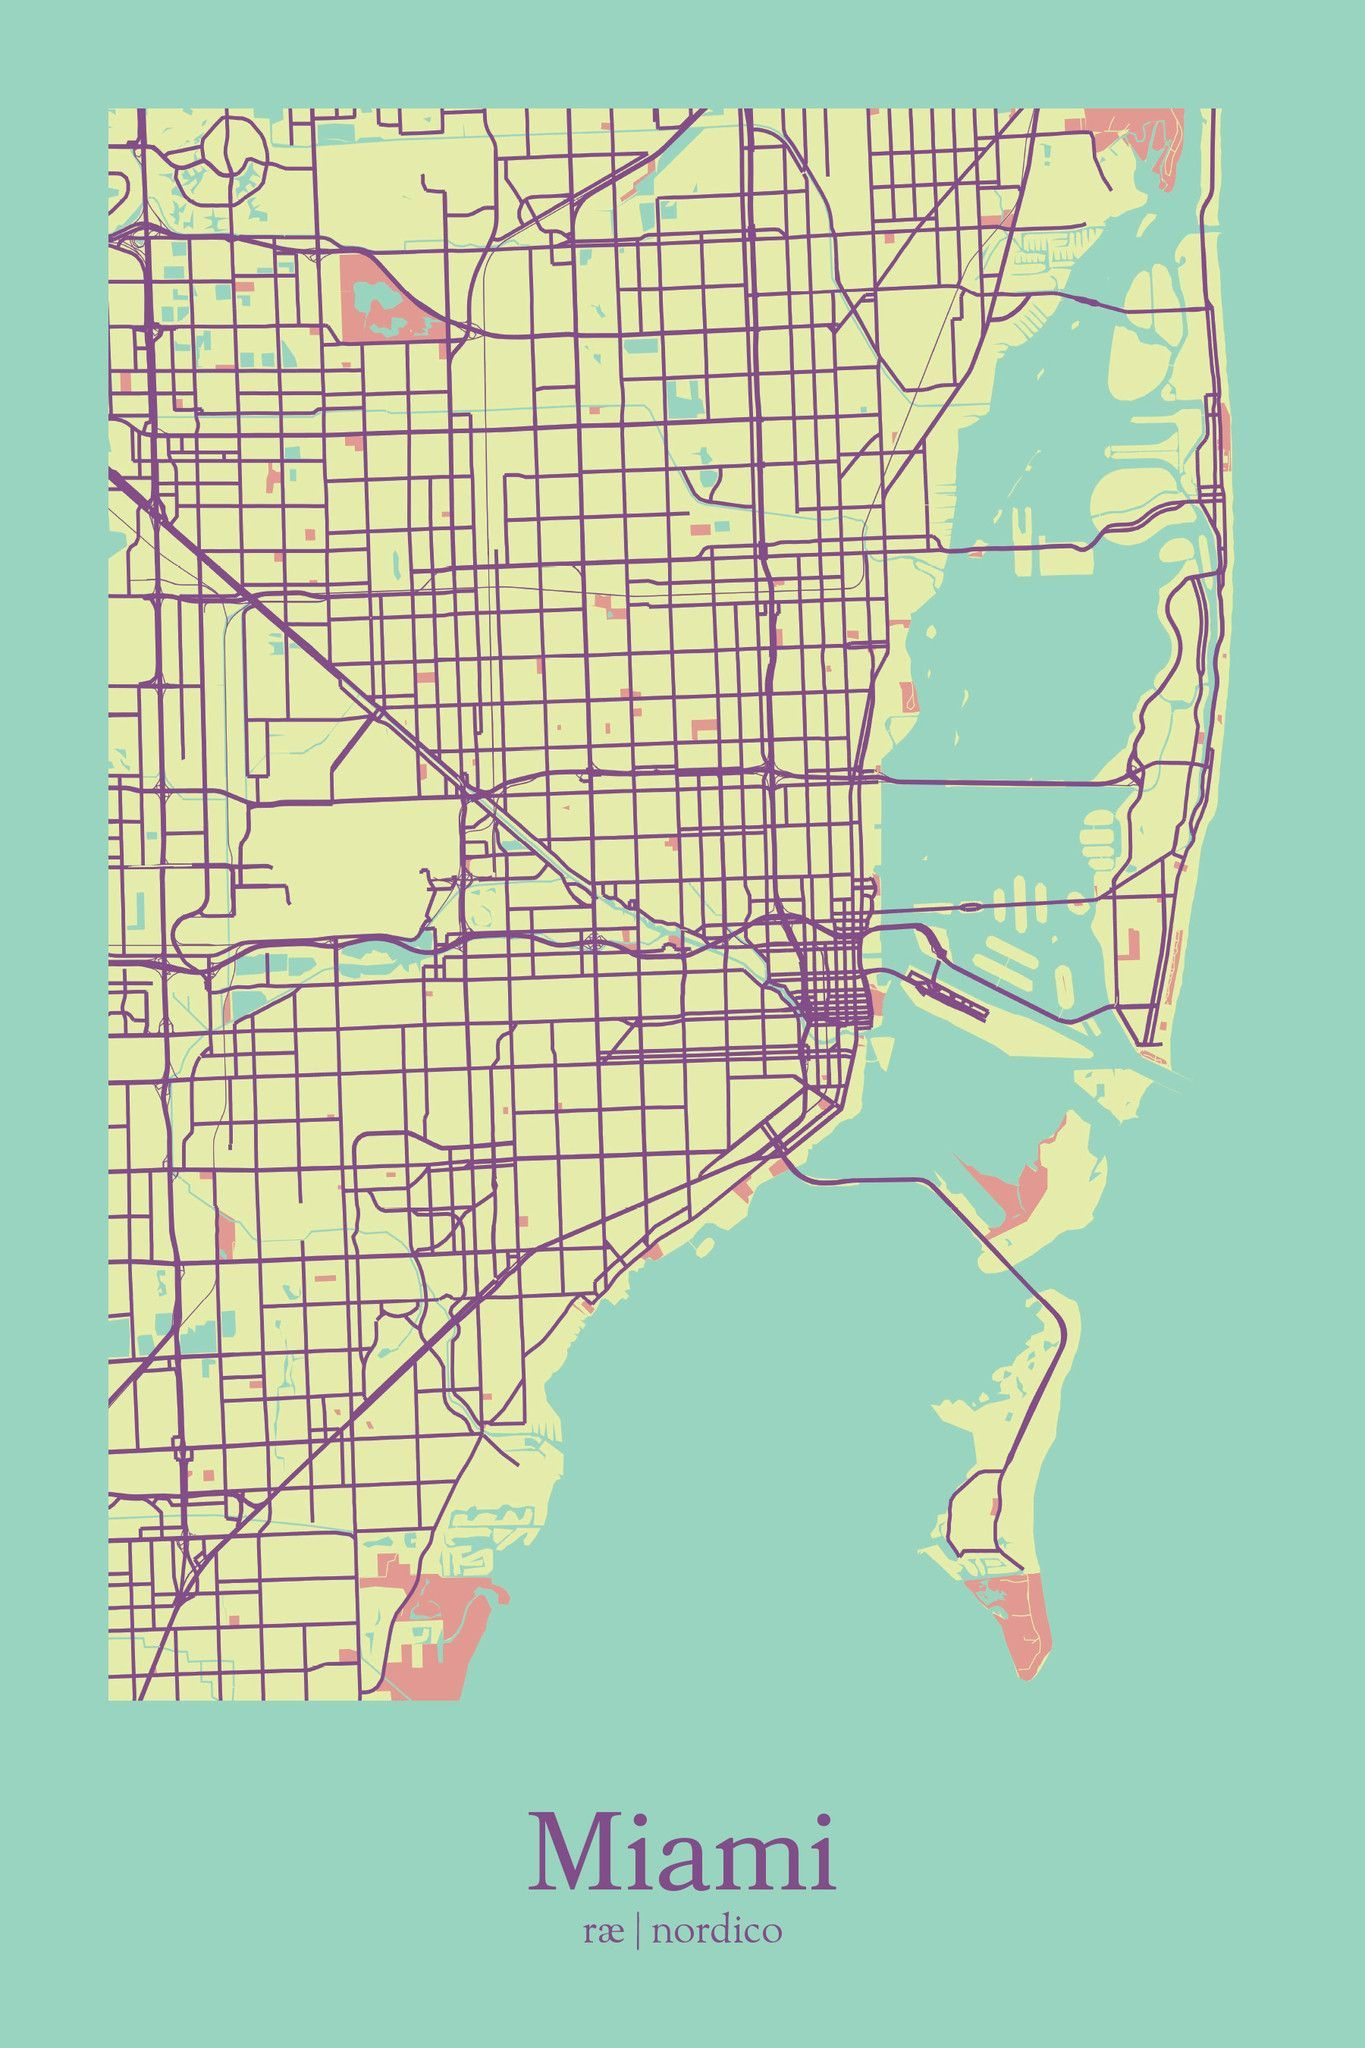 Miami, Usa Map Printrae Nordico #map #miami #florida | City Maps - Miami City Map Printable